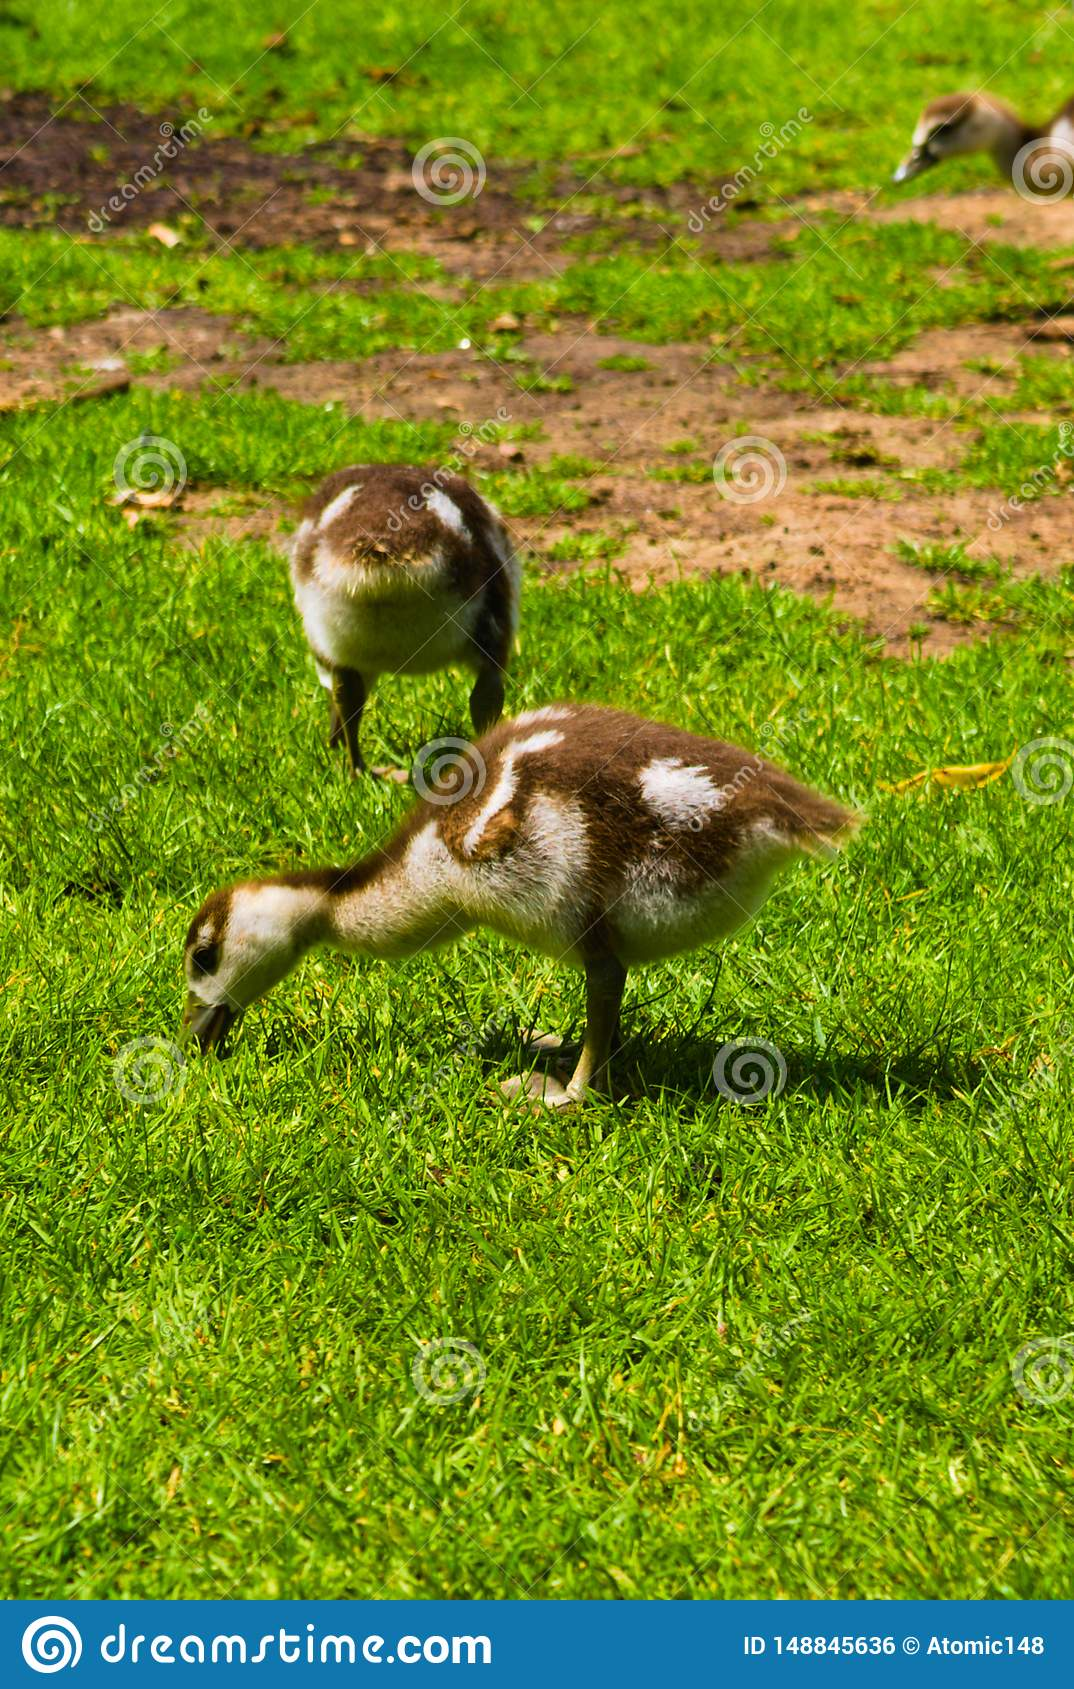 Newborn baby duck playing in the park